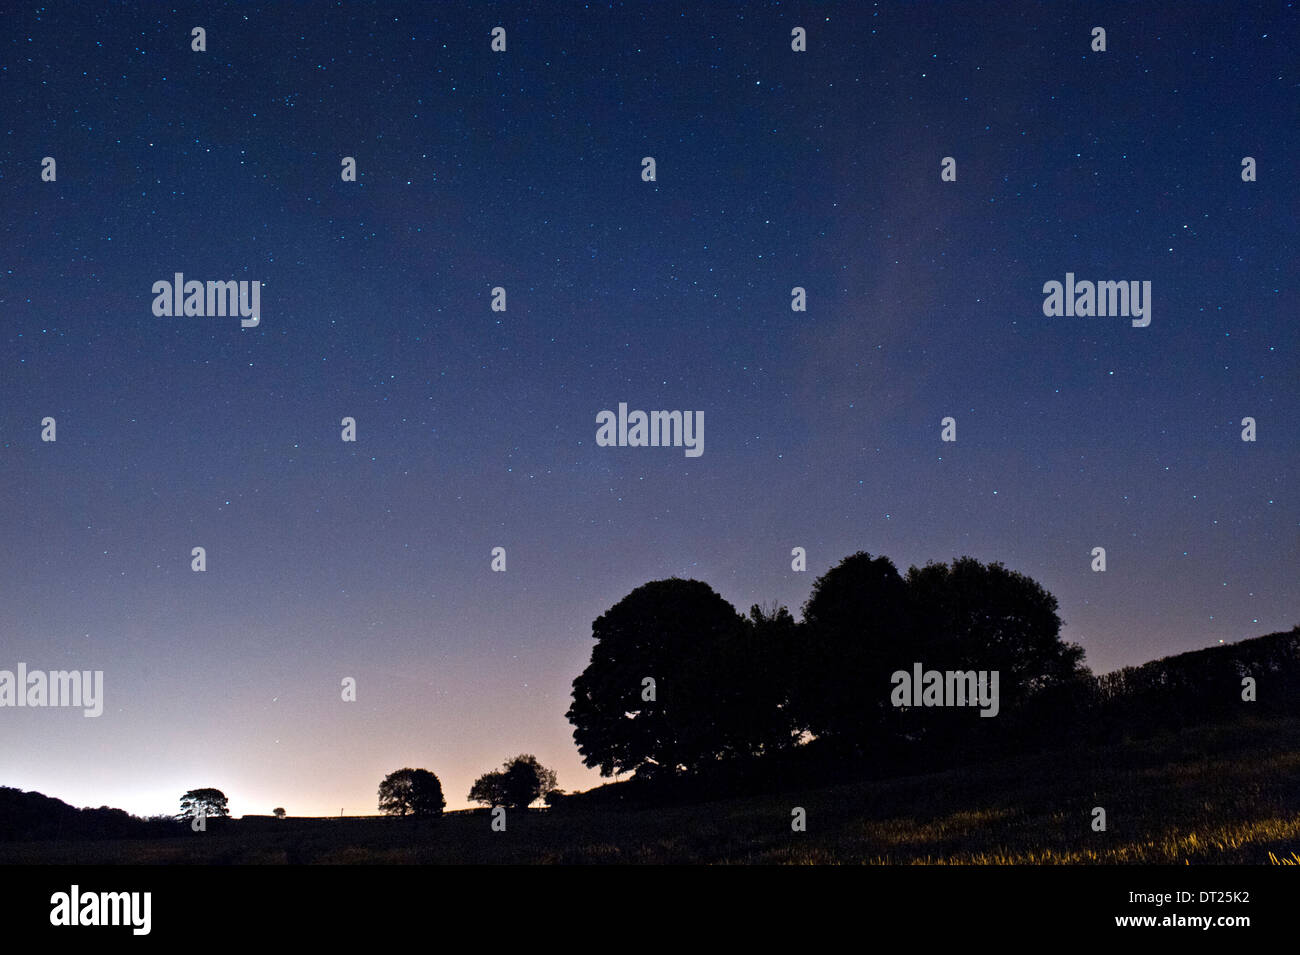 The Night Sky above Fields and Trees, Cheshire, England, UK - Stock Image